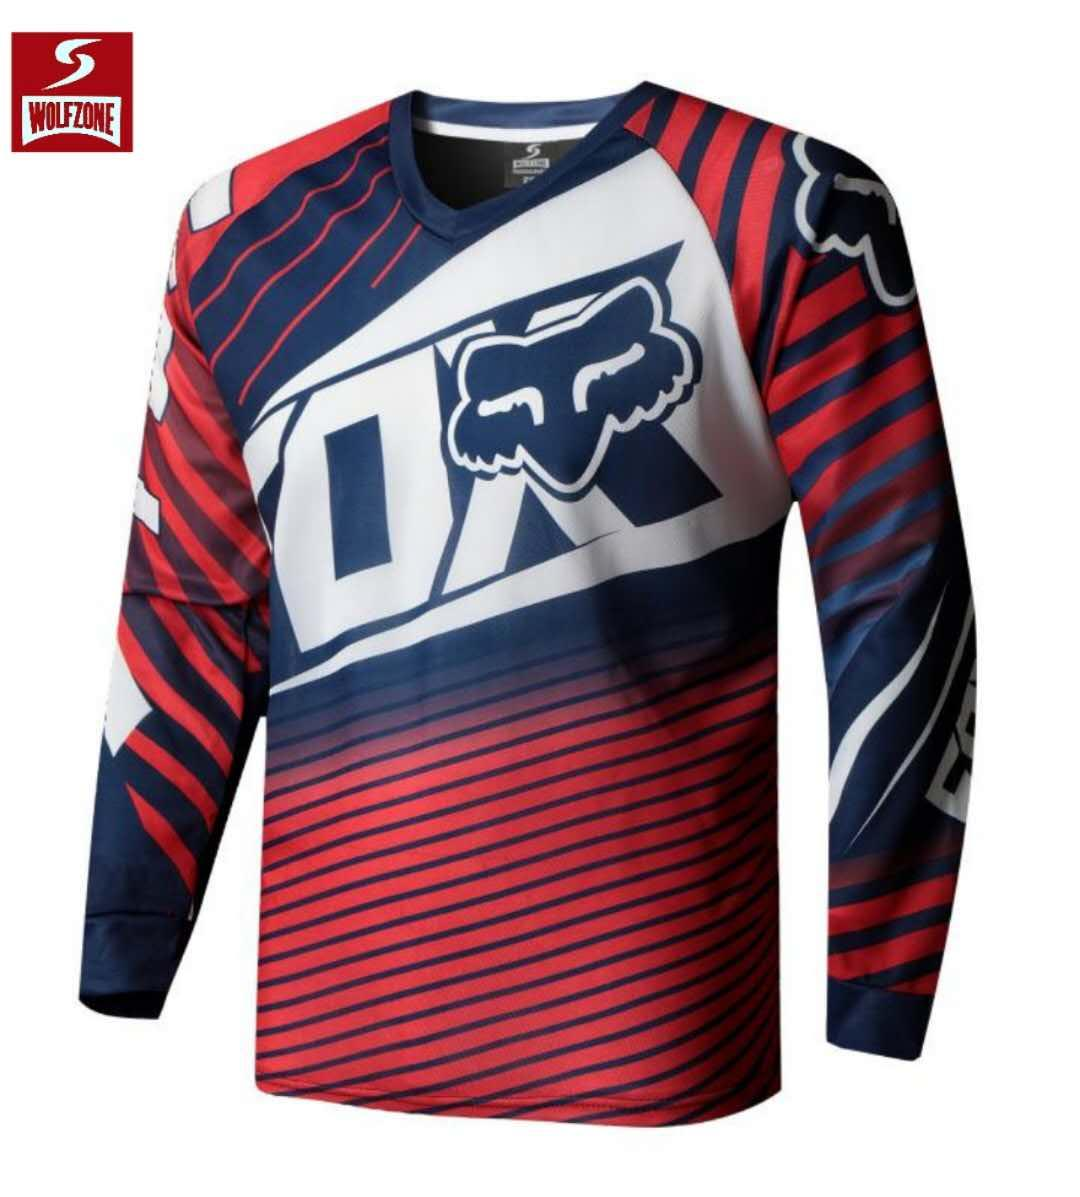 Philippines. Wolf Zone Spandex Fox Longsleeve Men s Sportswear Quick  DryFortress Cycling Mountain Bike Motocross Motorcycle MTB 843eedc52